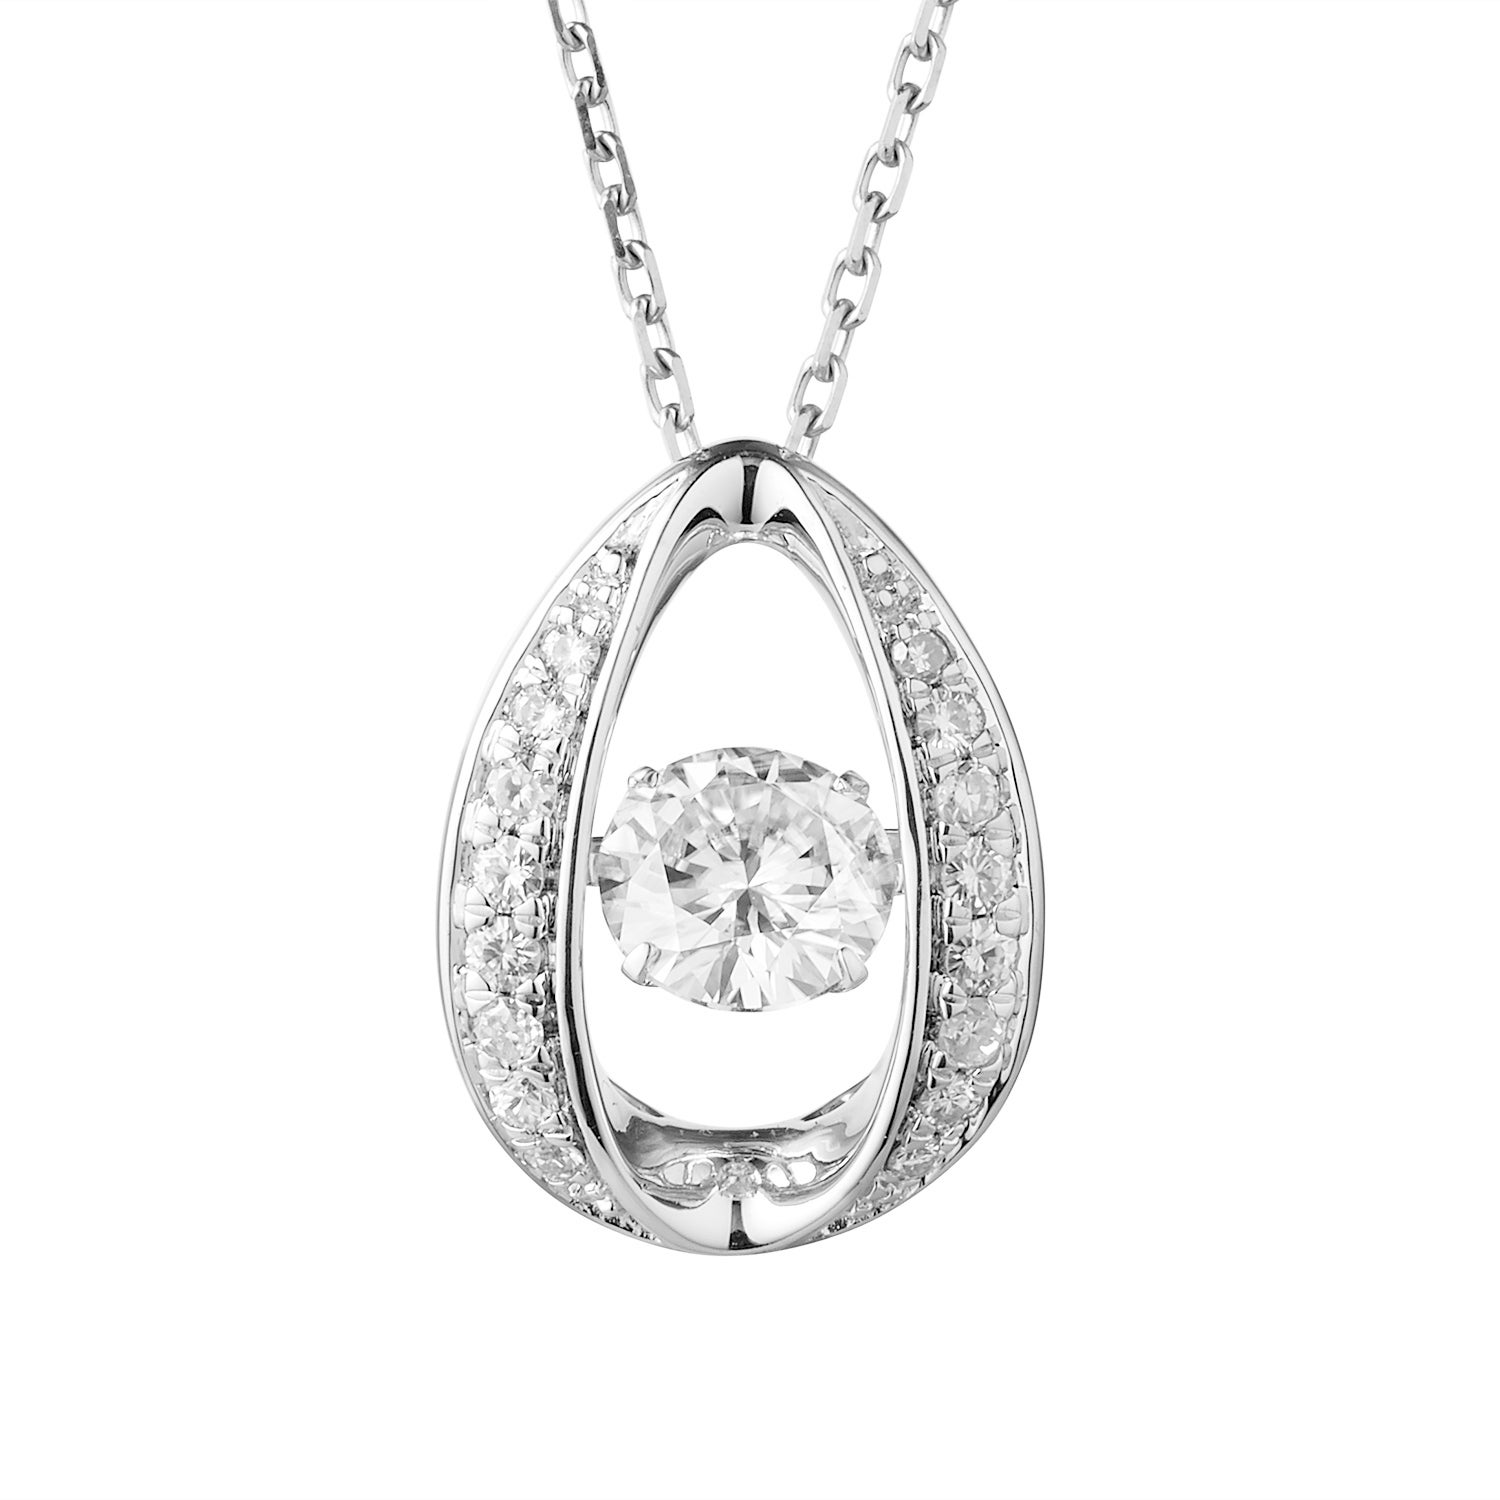 Charles & Colvard Sterling Silver 1 1/4ct DEW Forever Cla...